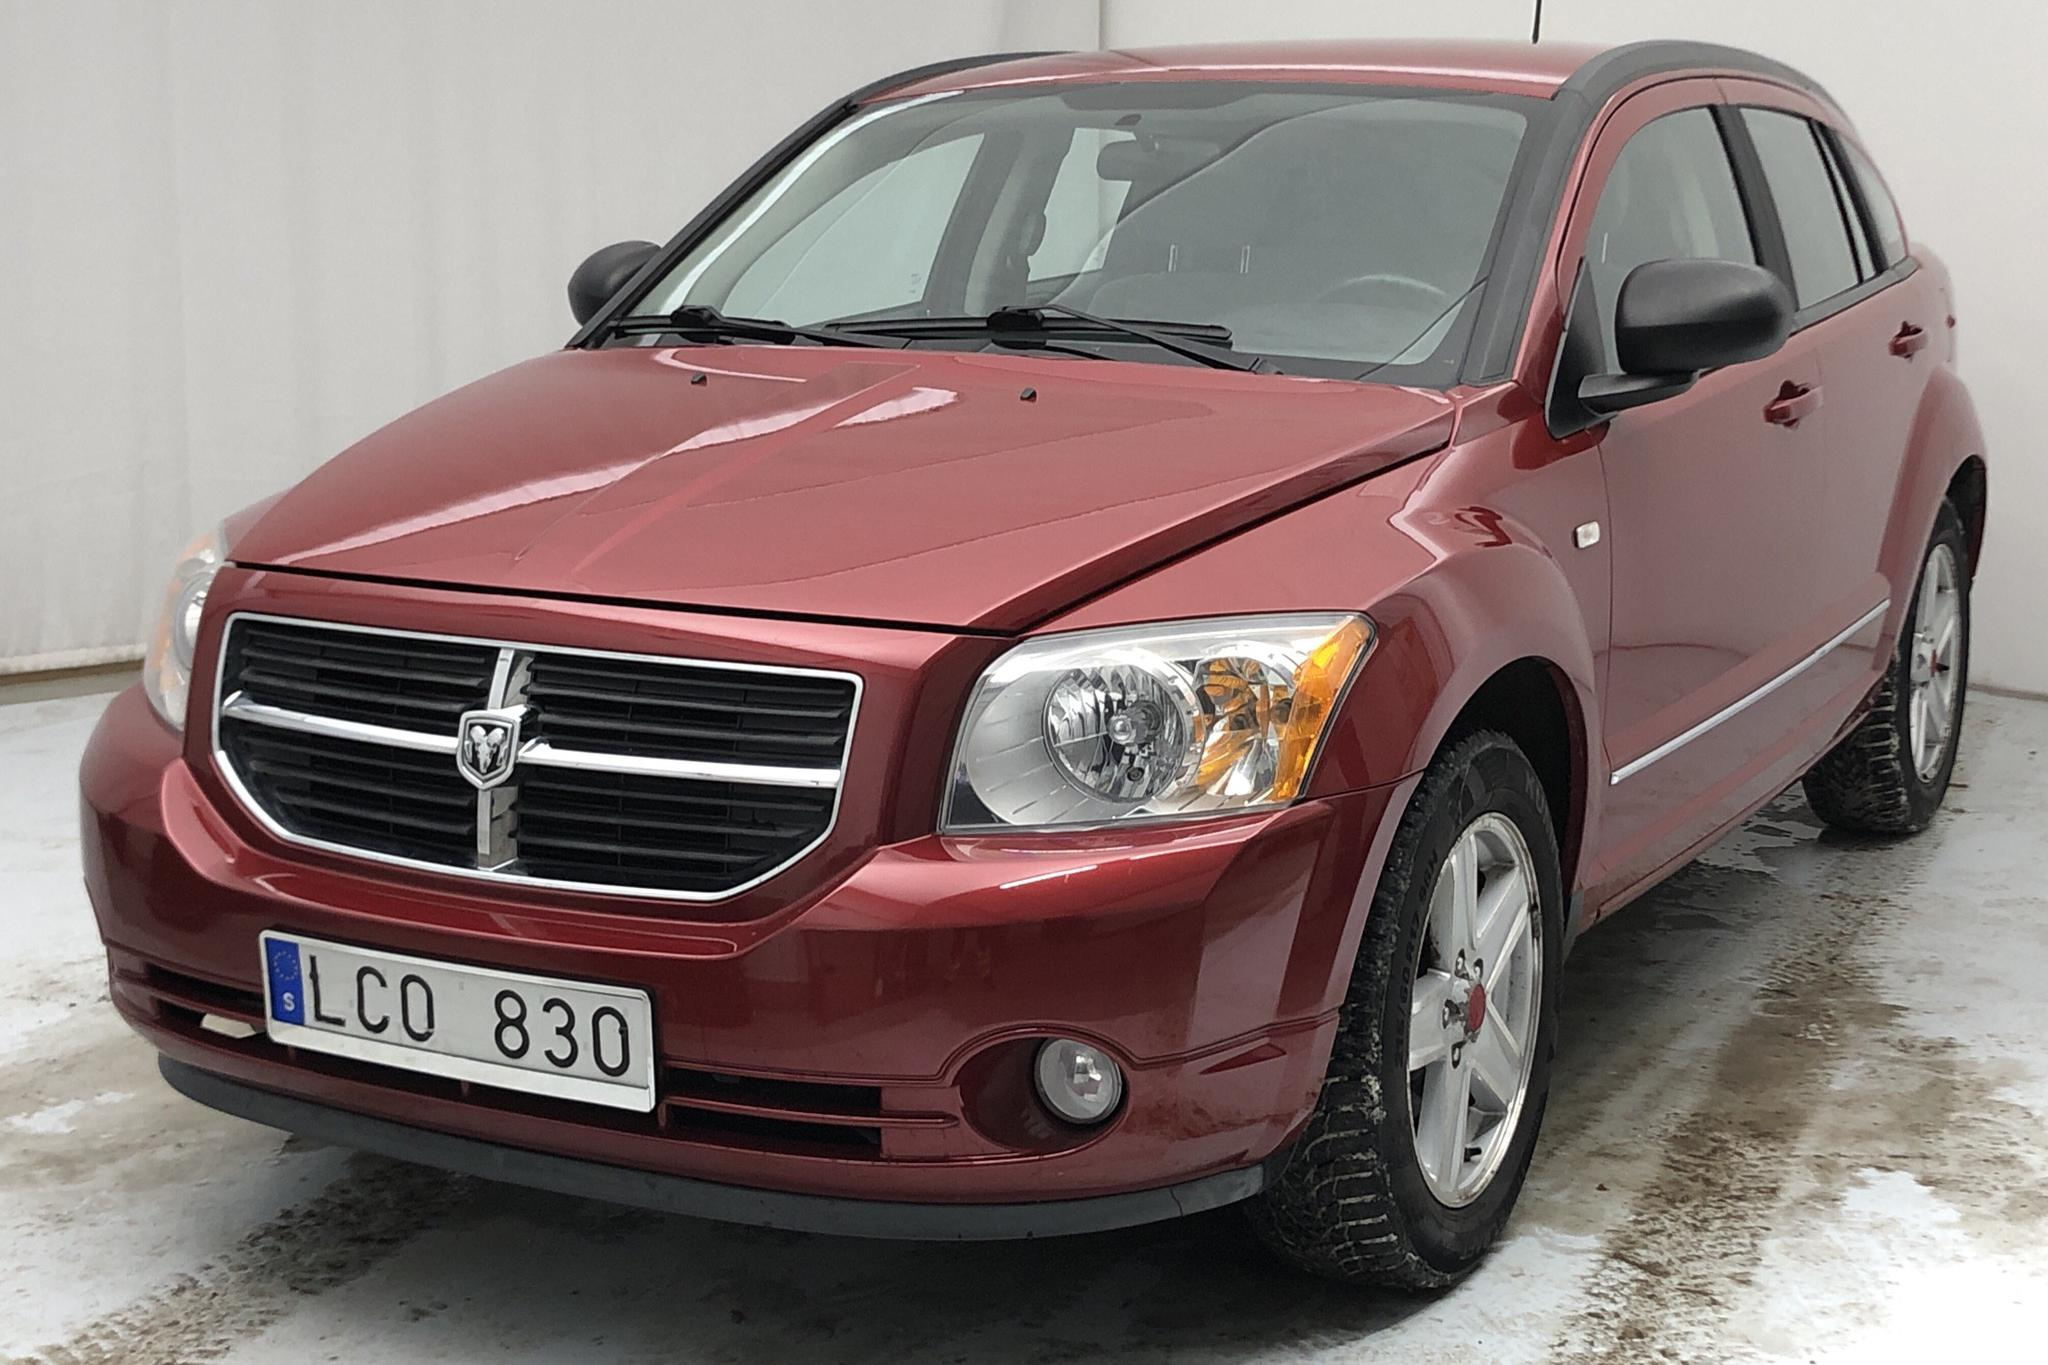 Dodge Caliber 2.0 (156hk) - 93 360 km - Manual - red - 2010